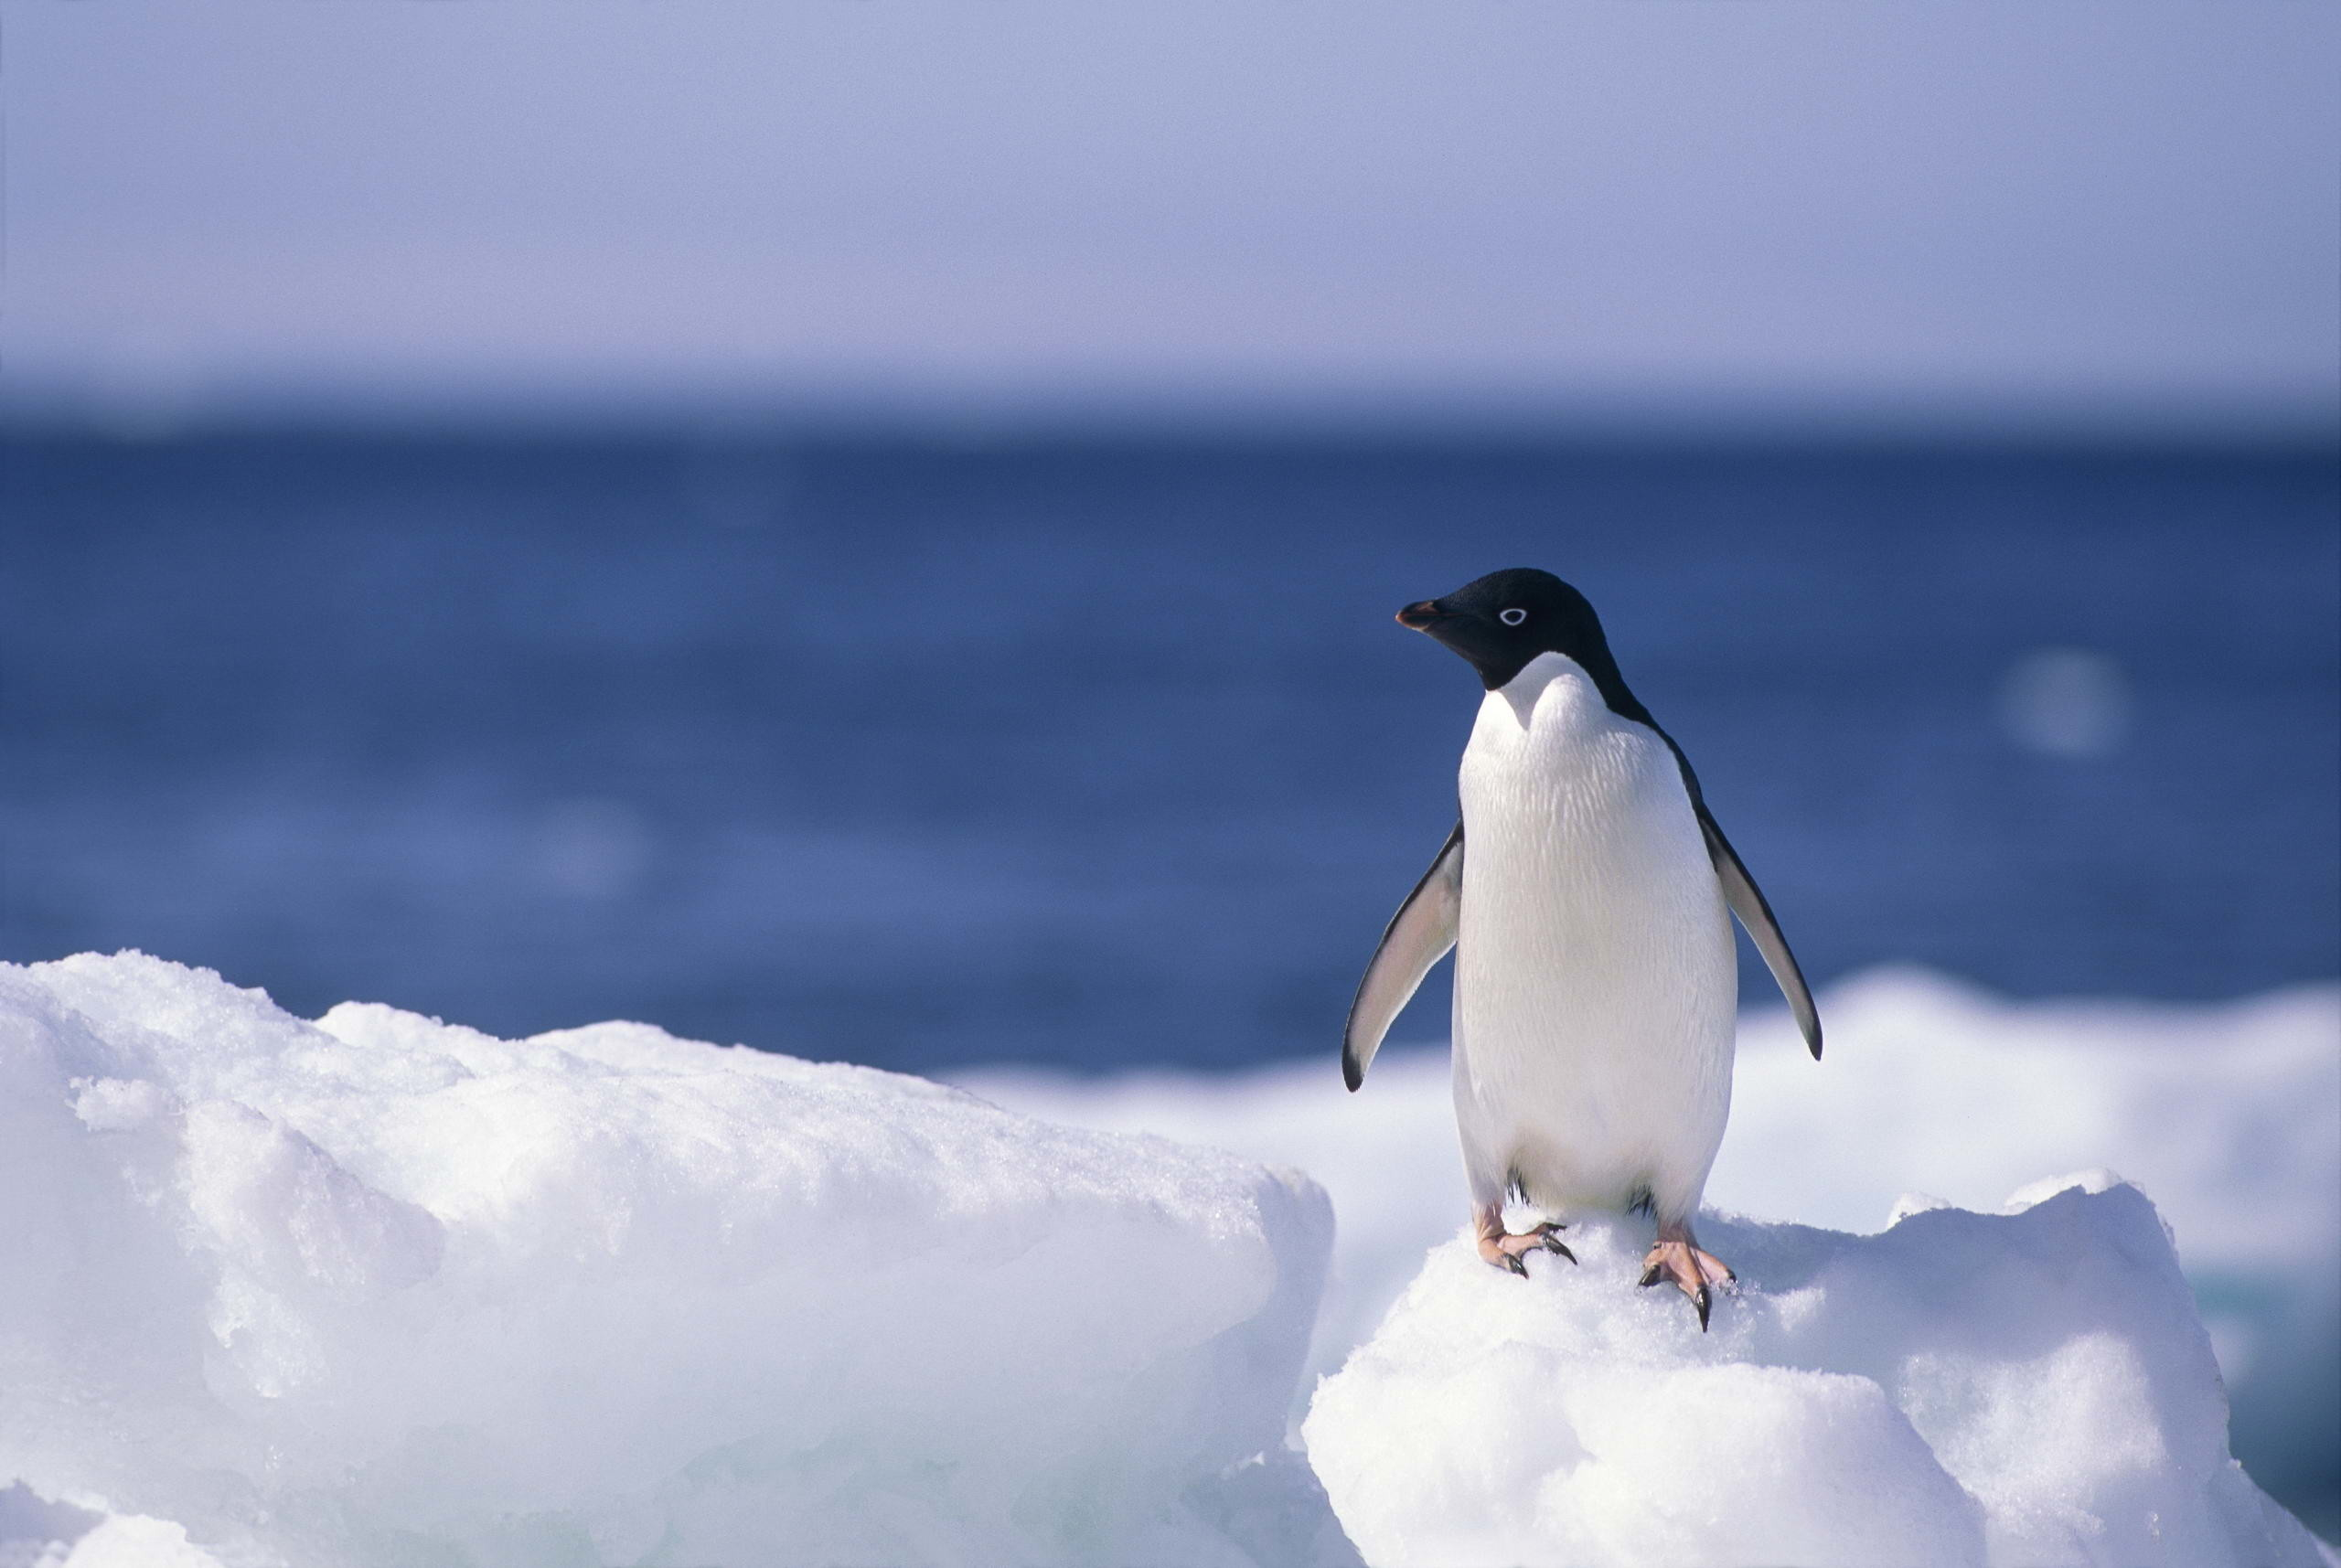 2560x1715  Penguin Wallpaper Desktop Background · 91 · Download · Res:  2560x1440 ...